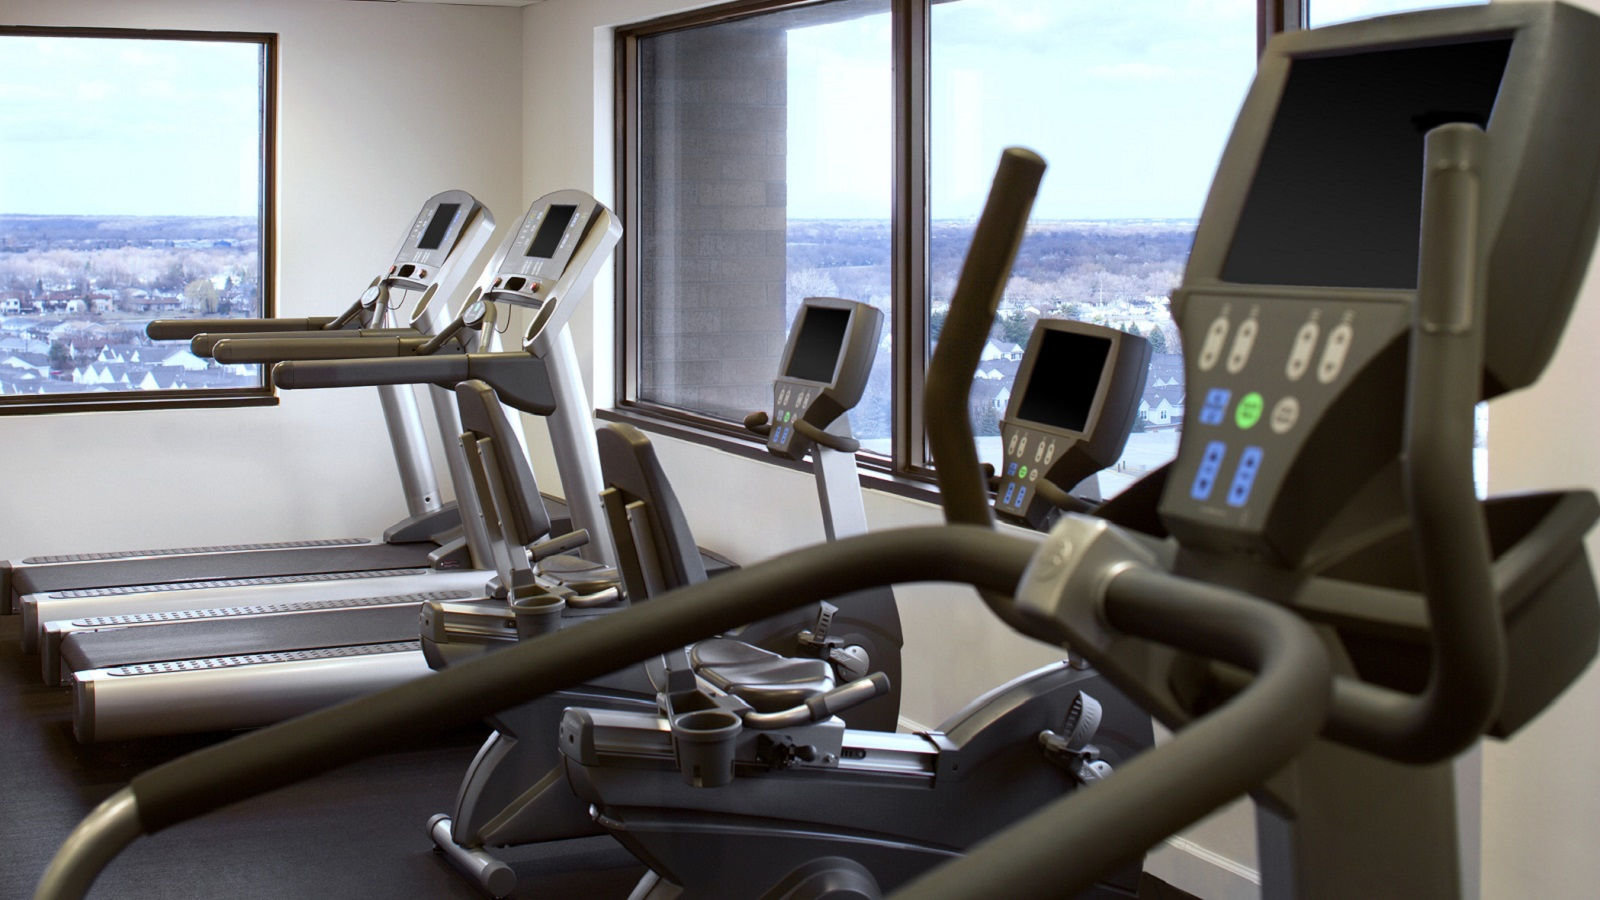 WestinWORKOUT® at The Westin Chicago Northwest